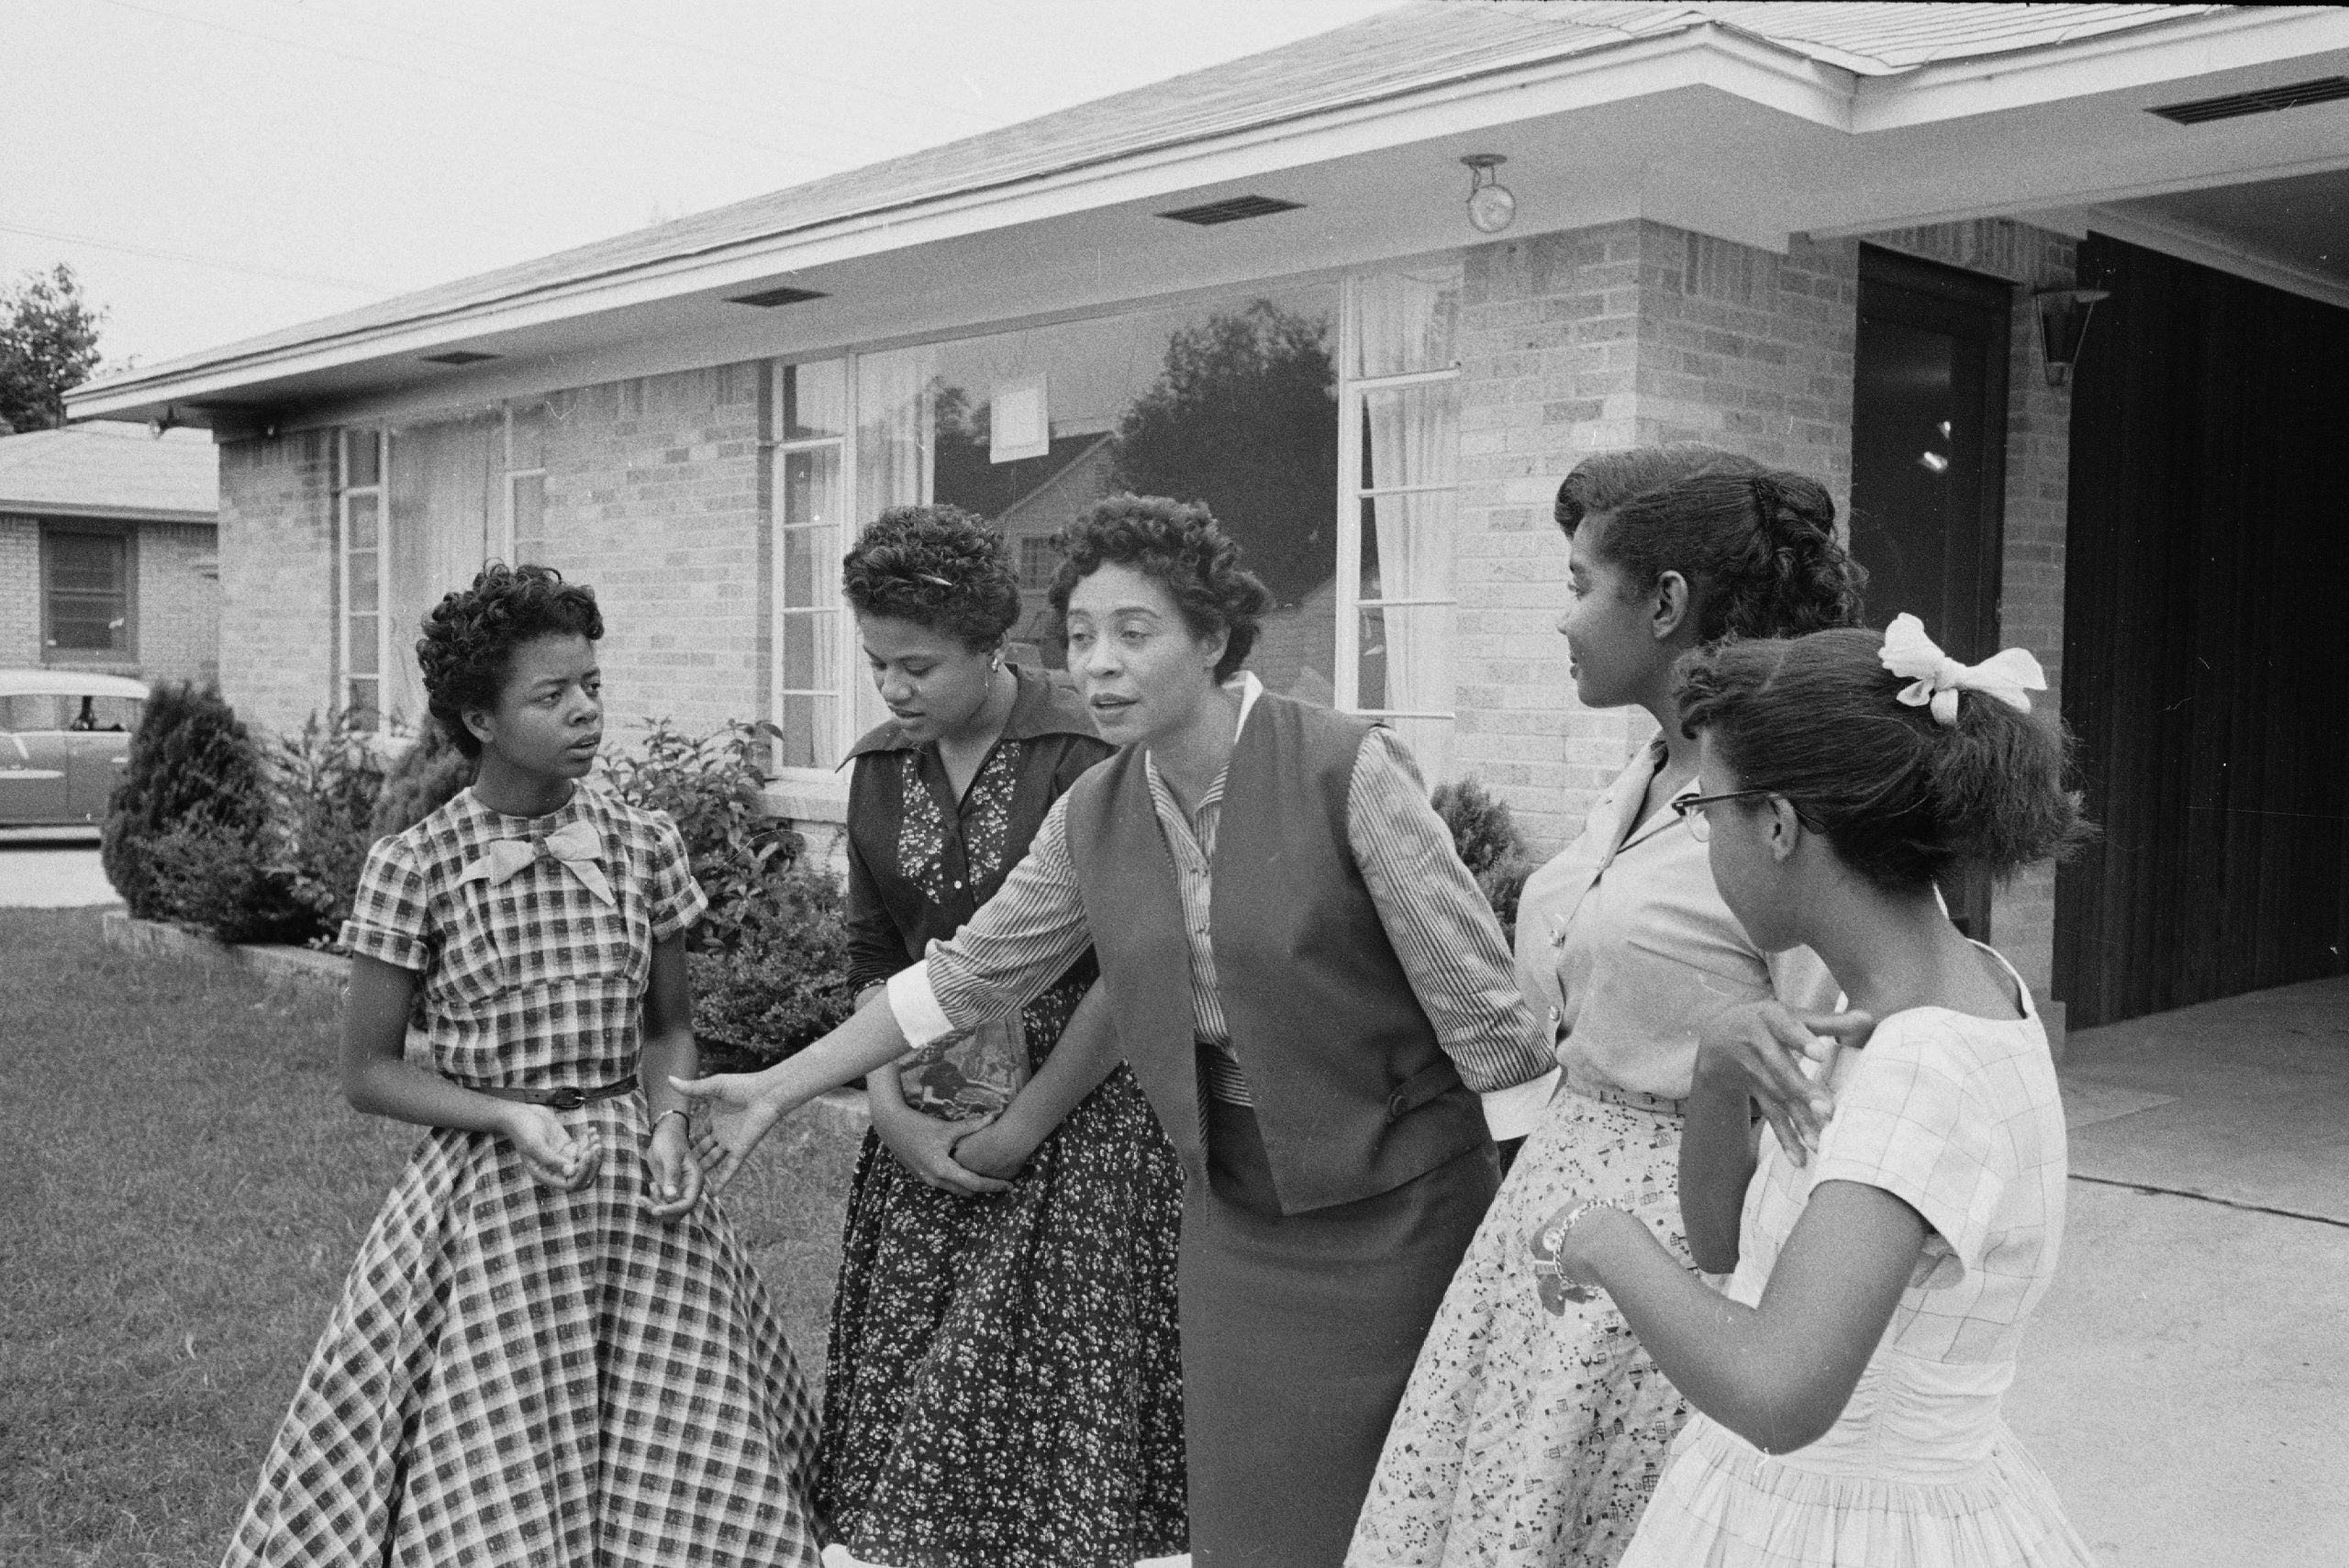 Daisy Bates stands with four African-American students in front of her home in Little Rock, Arkansas,